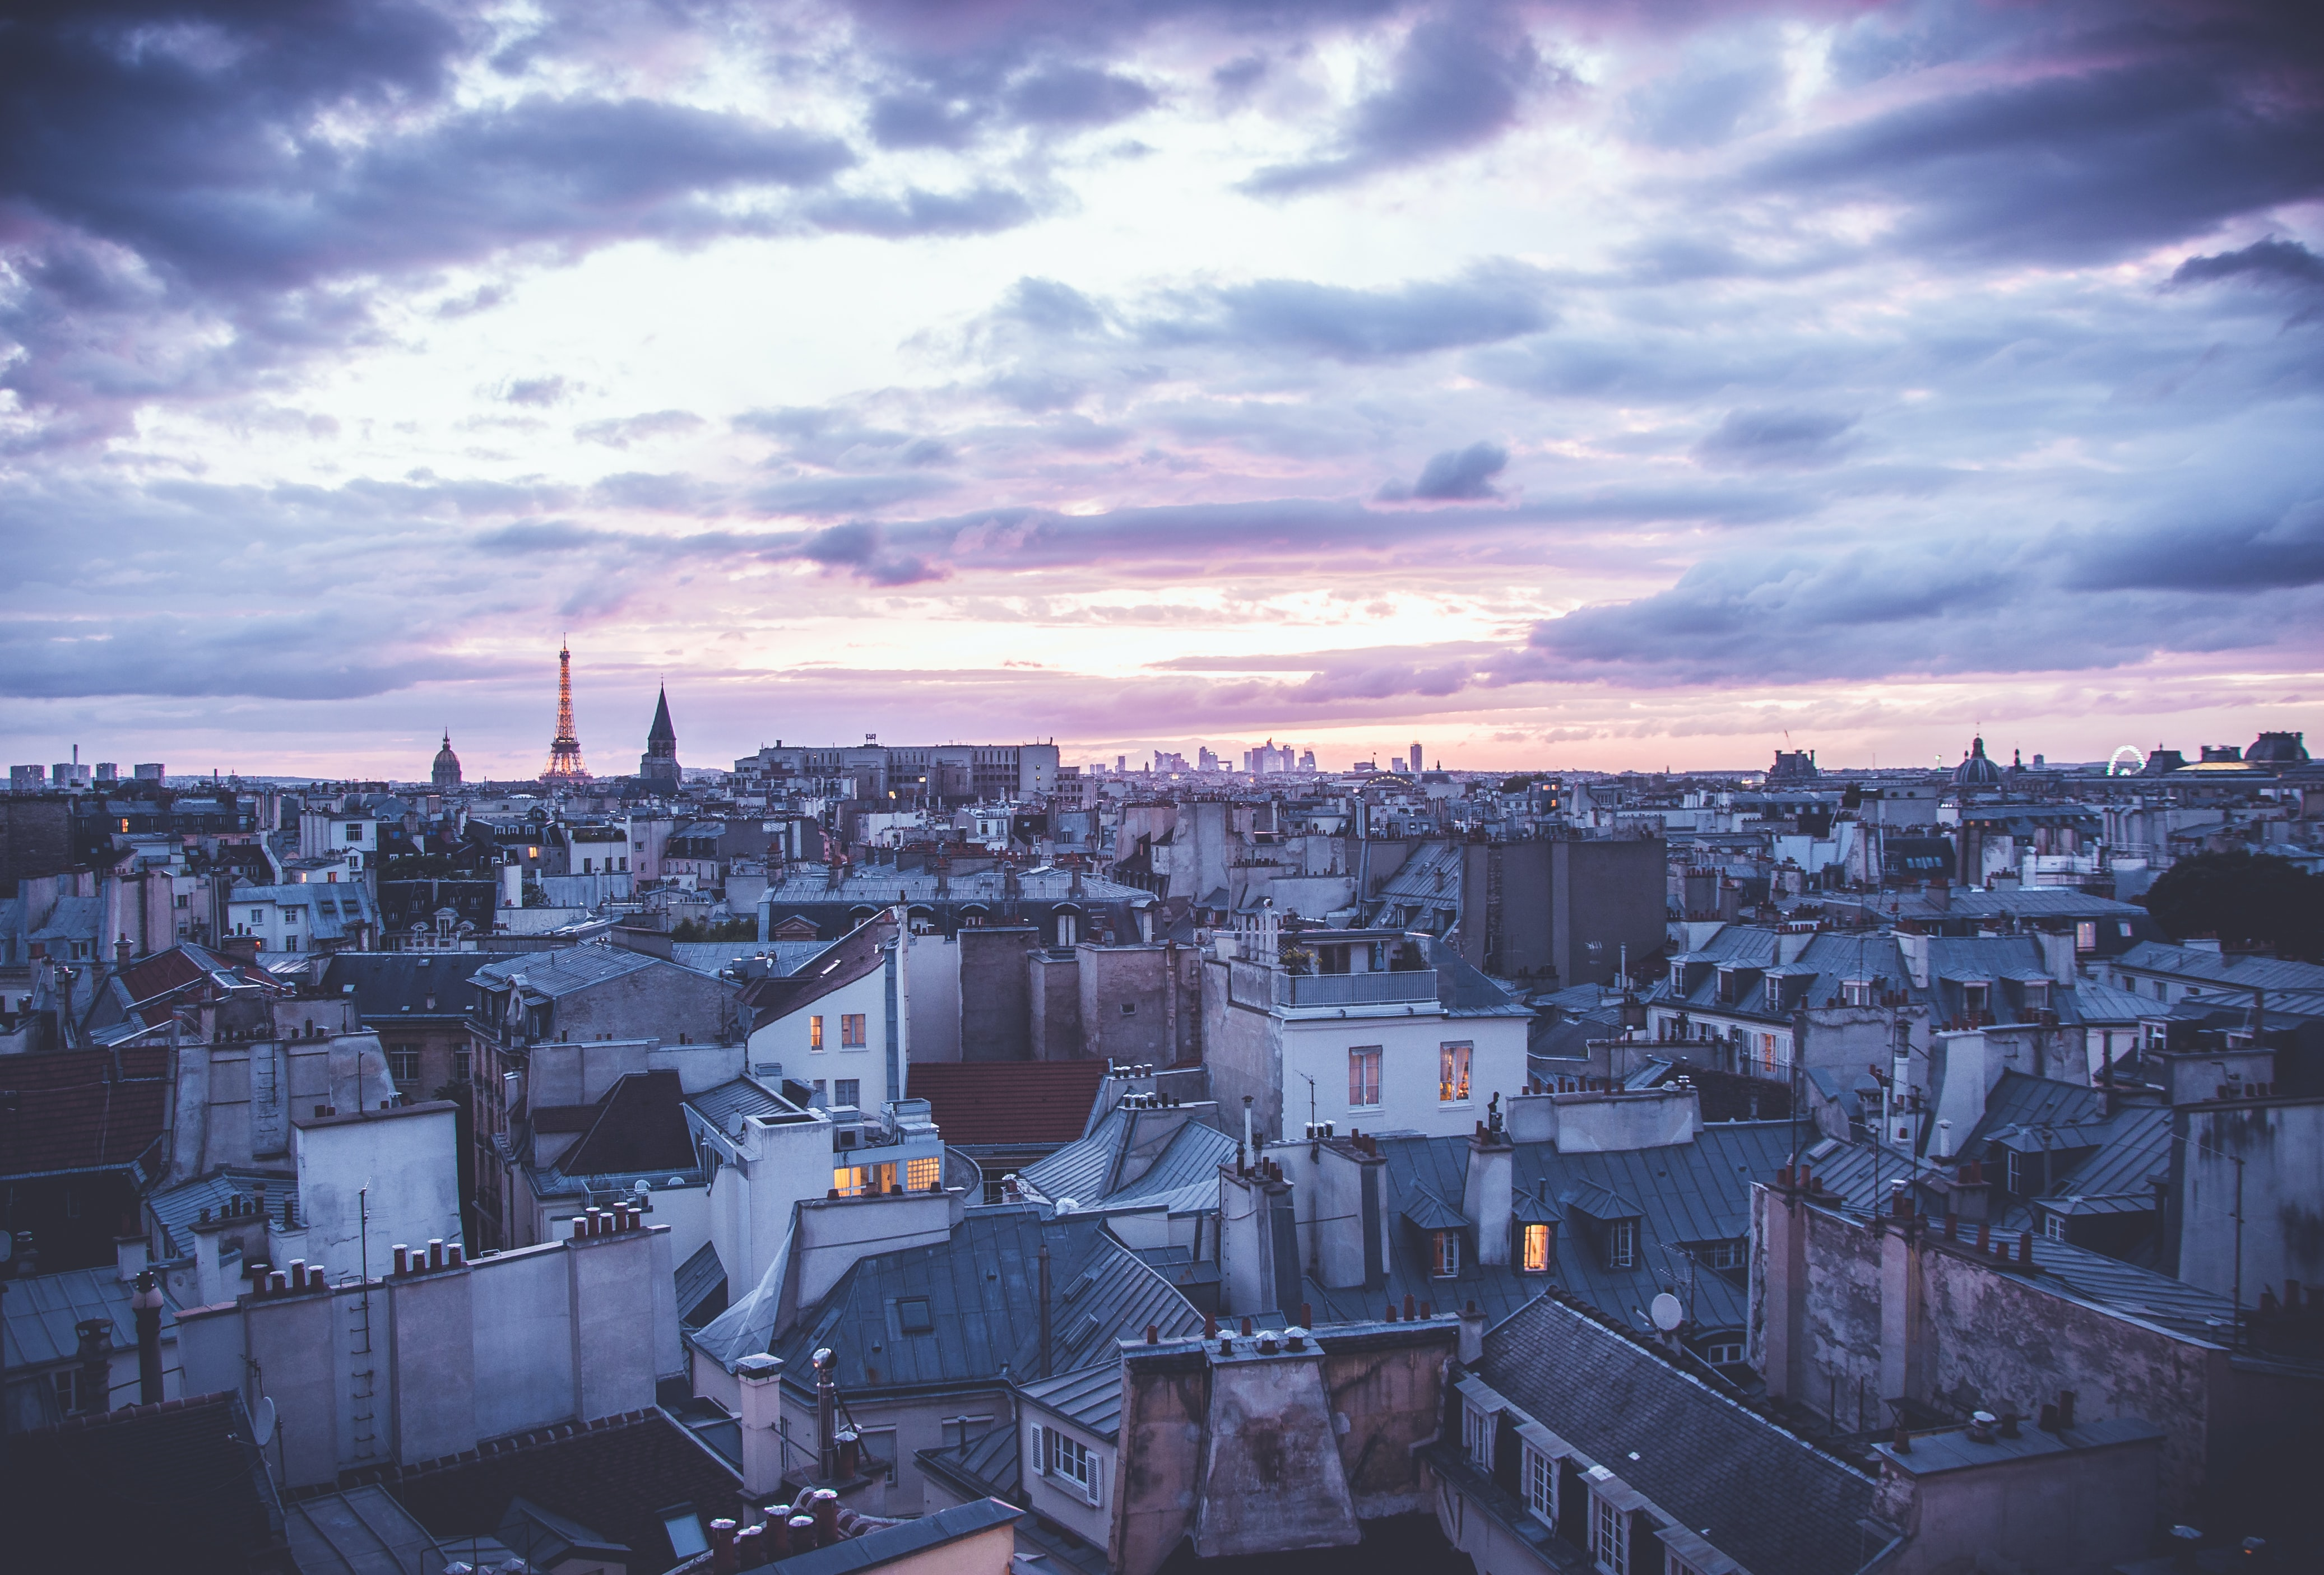 A view of the urban cityscape and clouds from a rooftop of Paris.